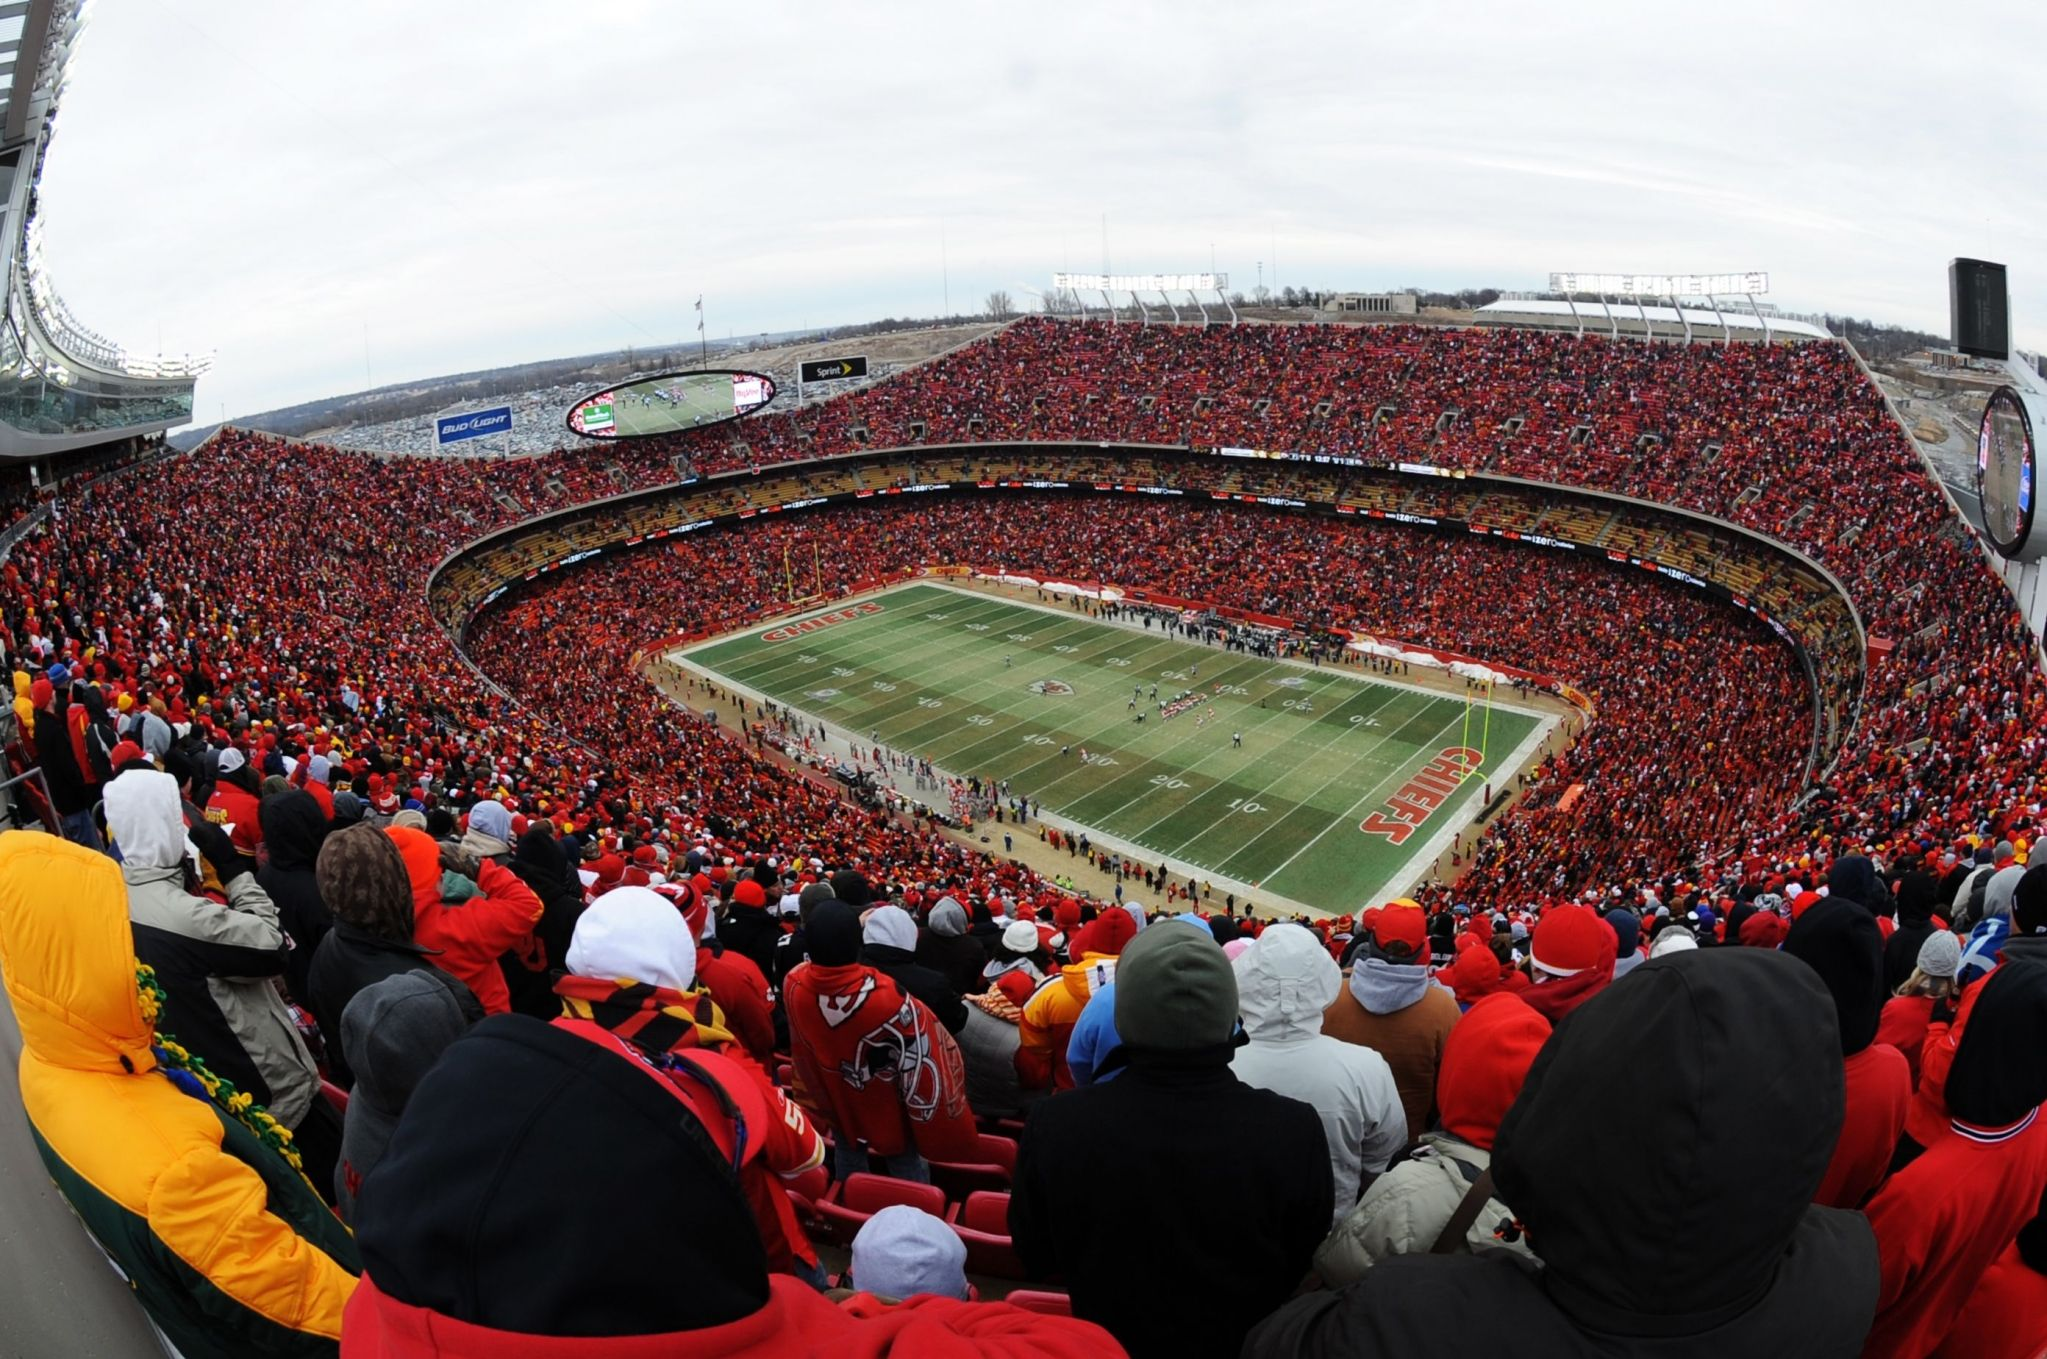 image of arrowhead stadium